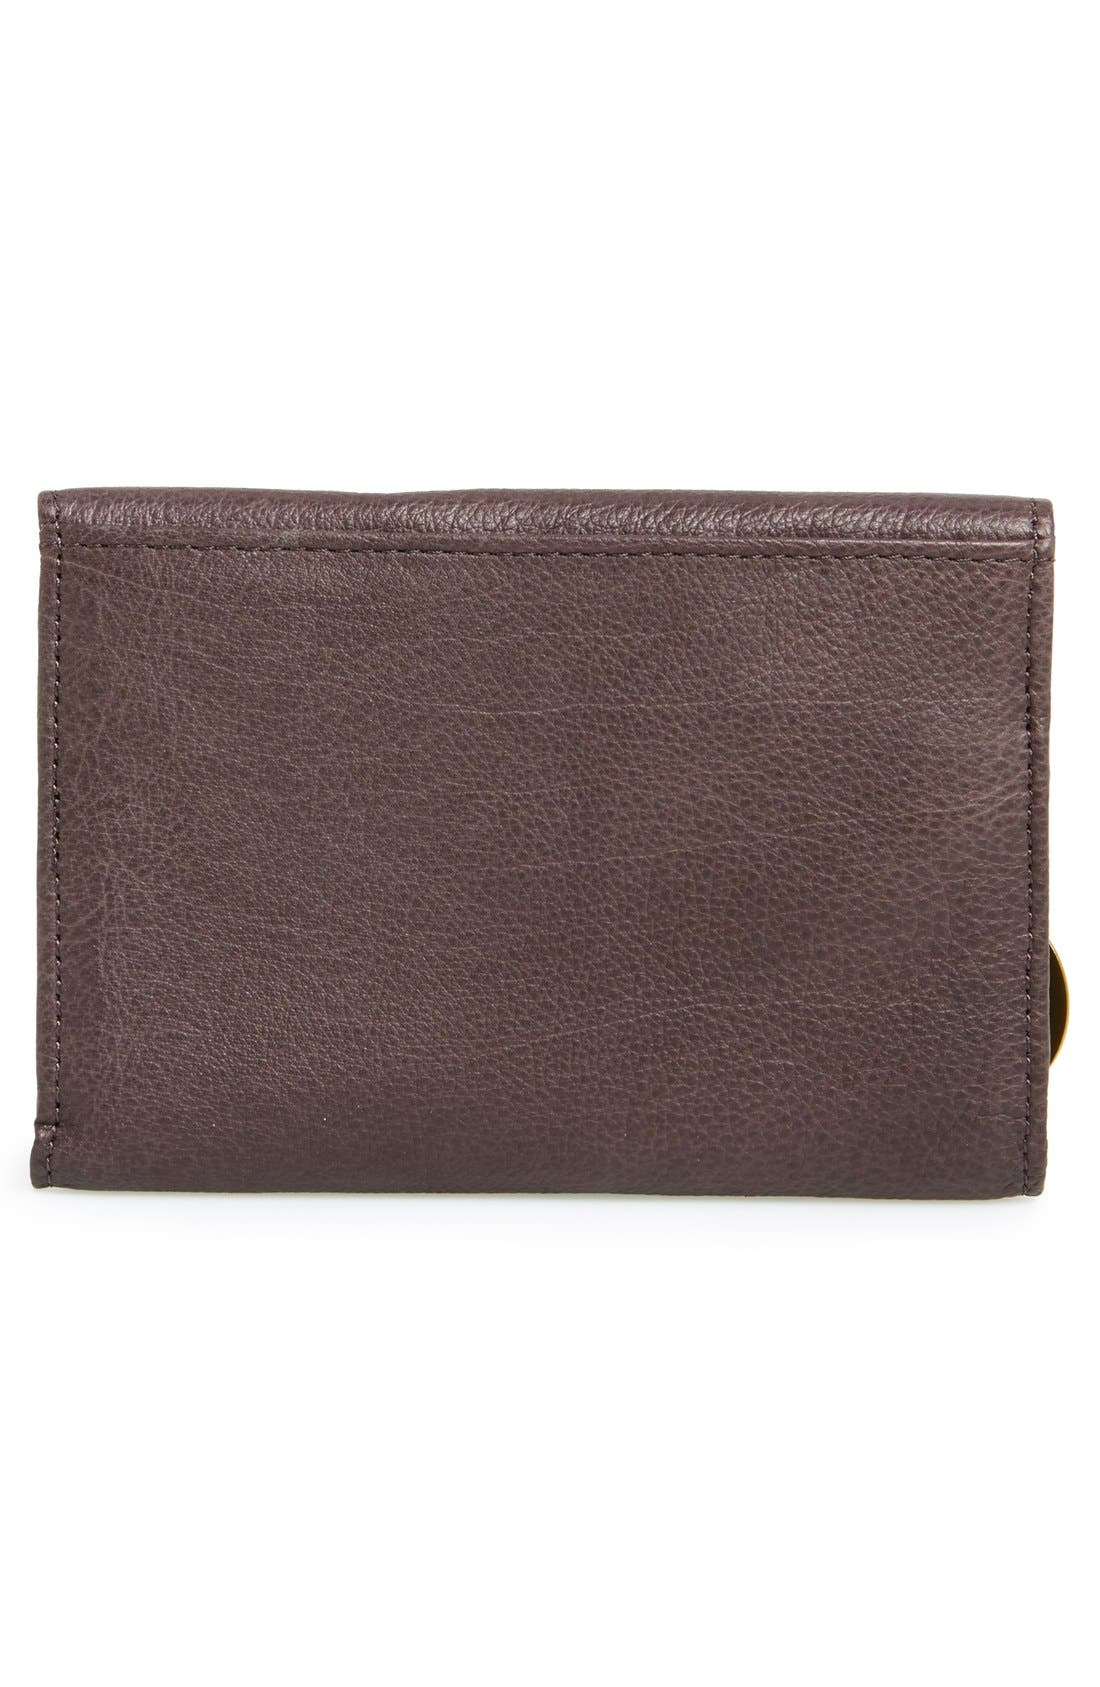 LIEBESKIND,                             'Small Alexandra' Leather Wallet,                             Alternate thumbnail 4, color,                             020